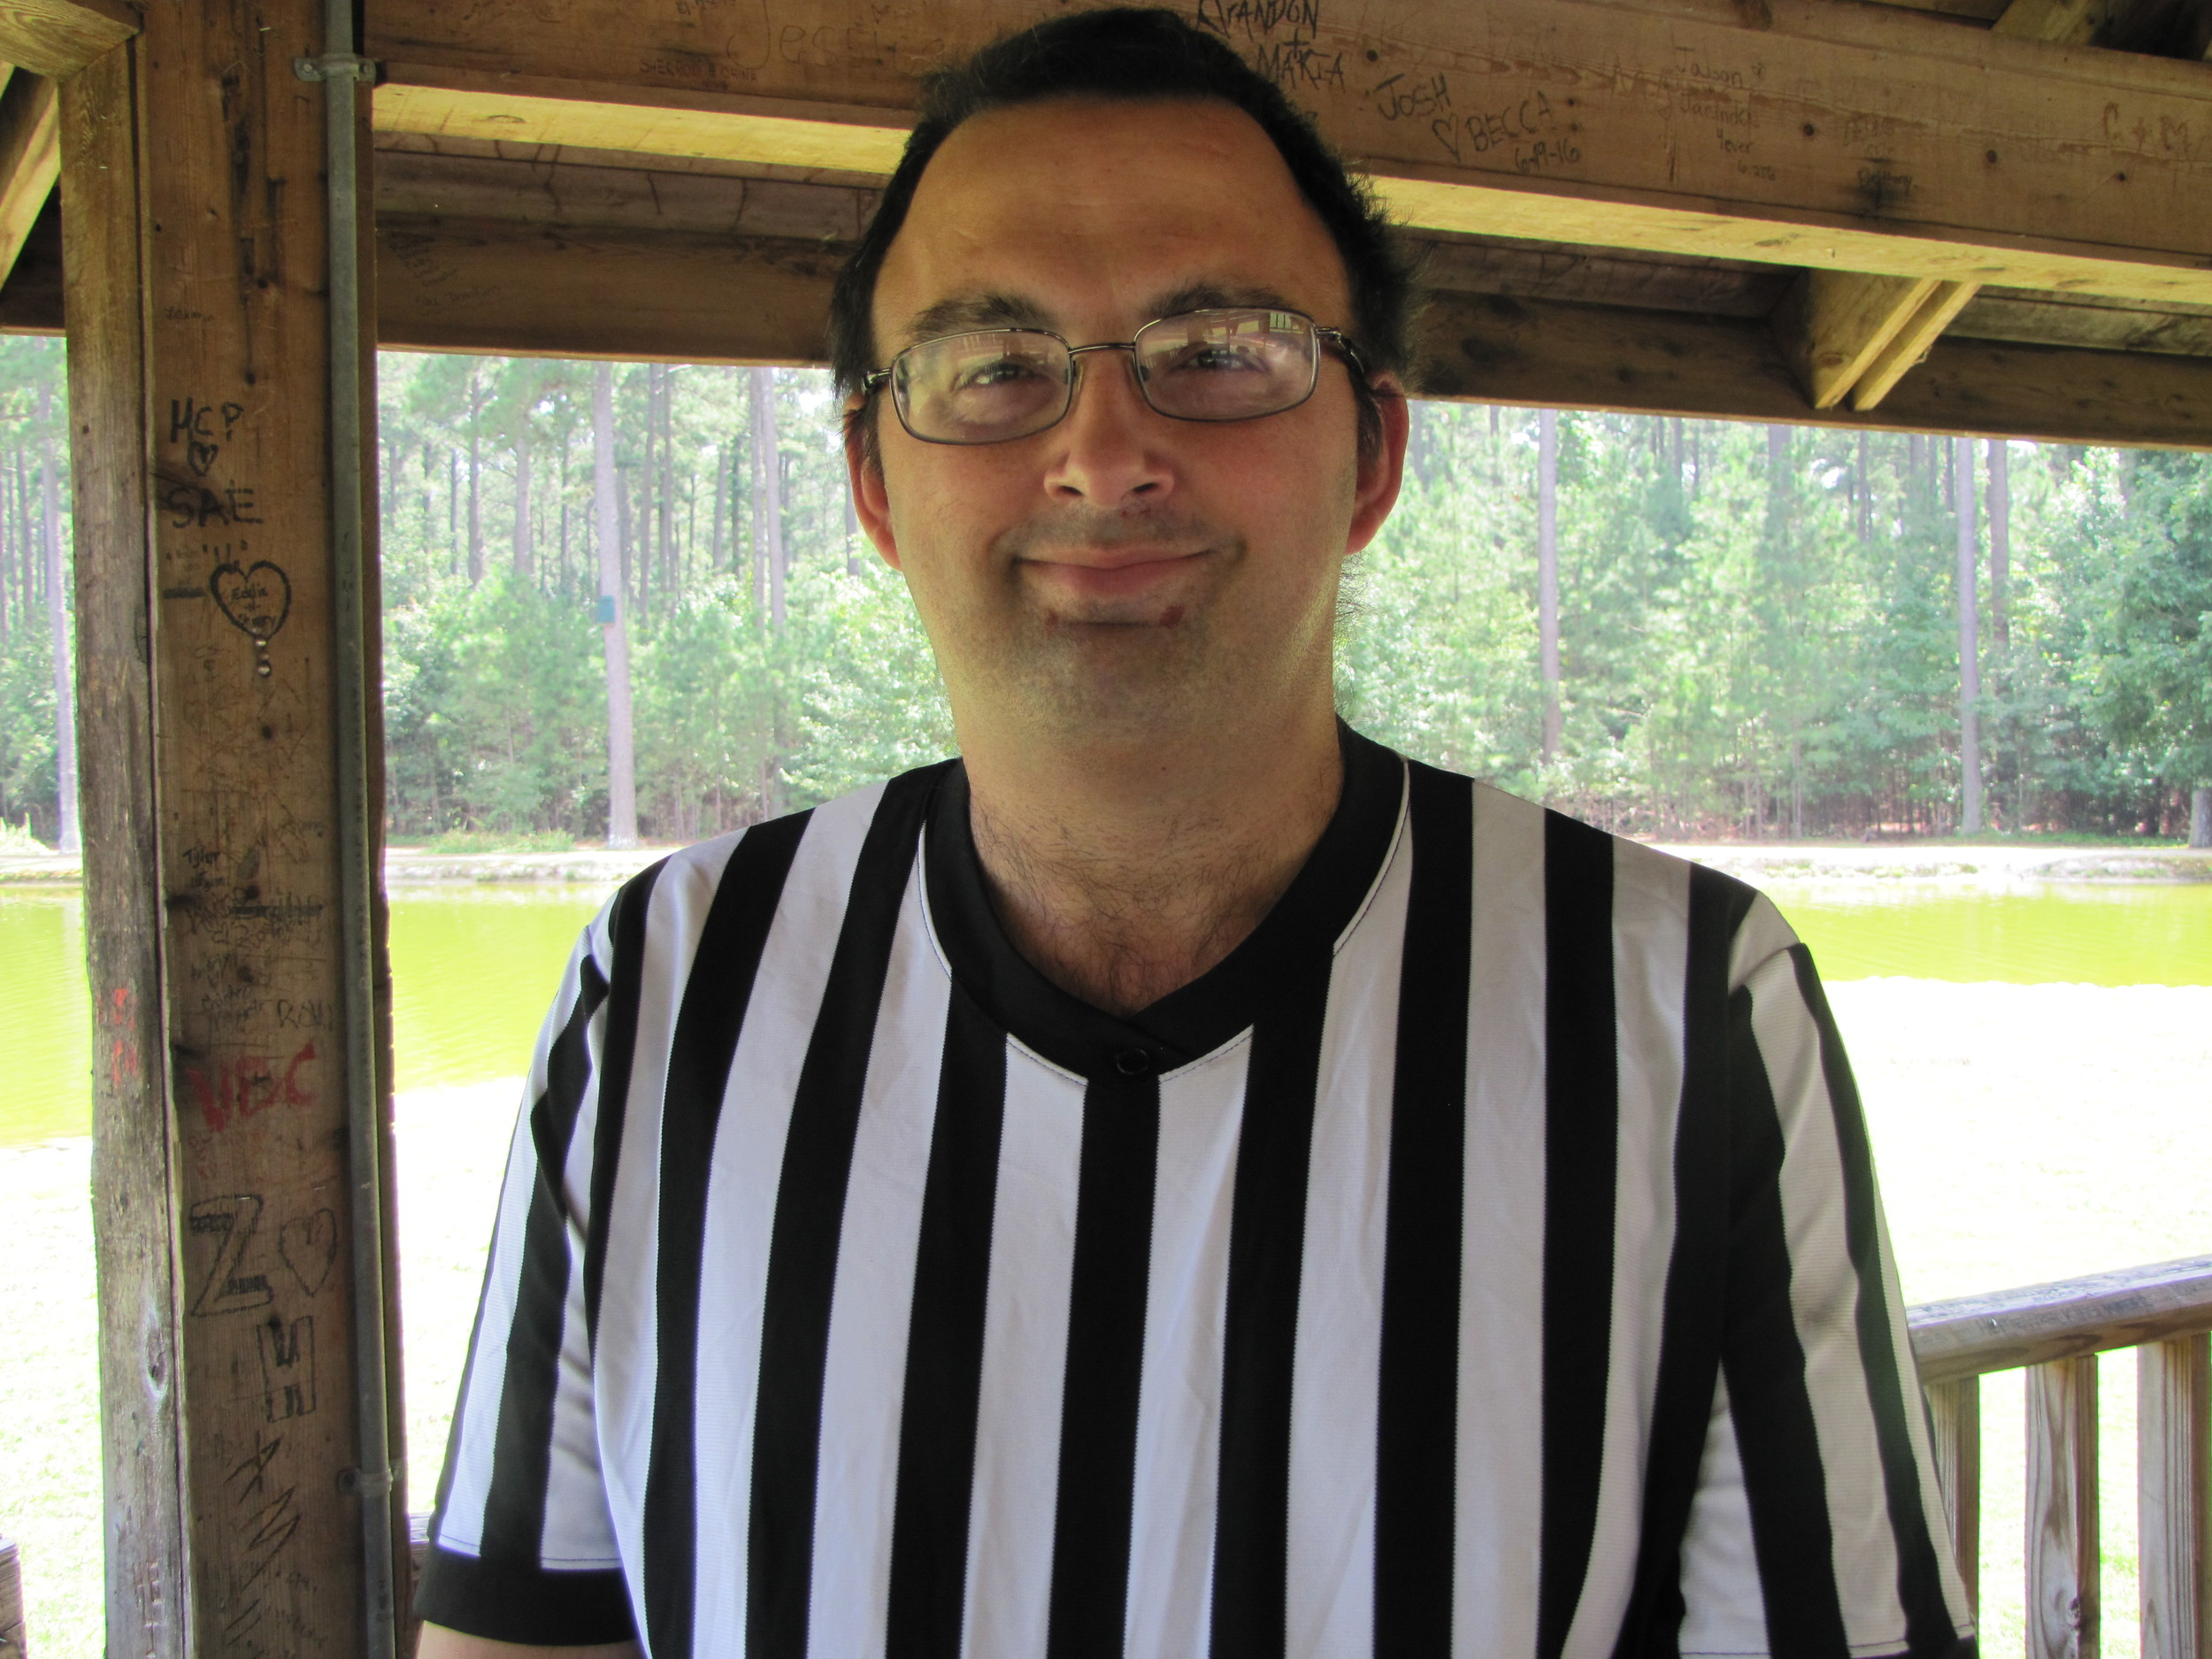 Cartersville native Chris Emerson has been moonlighting as a professional wrestling referee for about two decades.